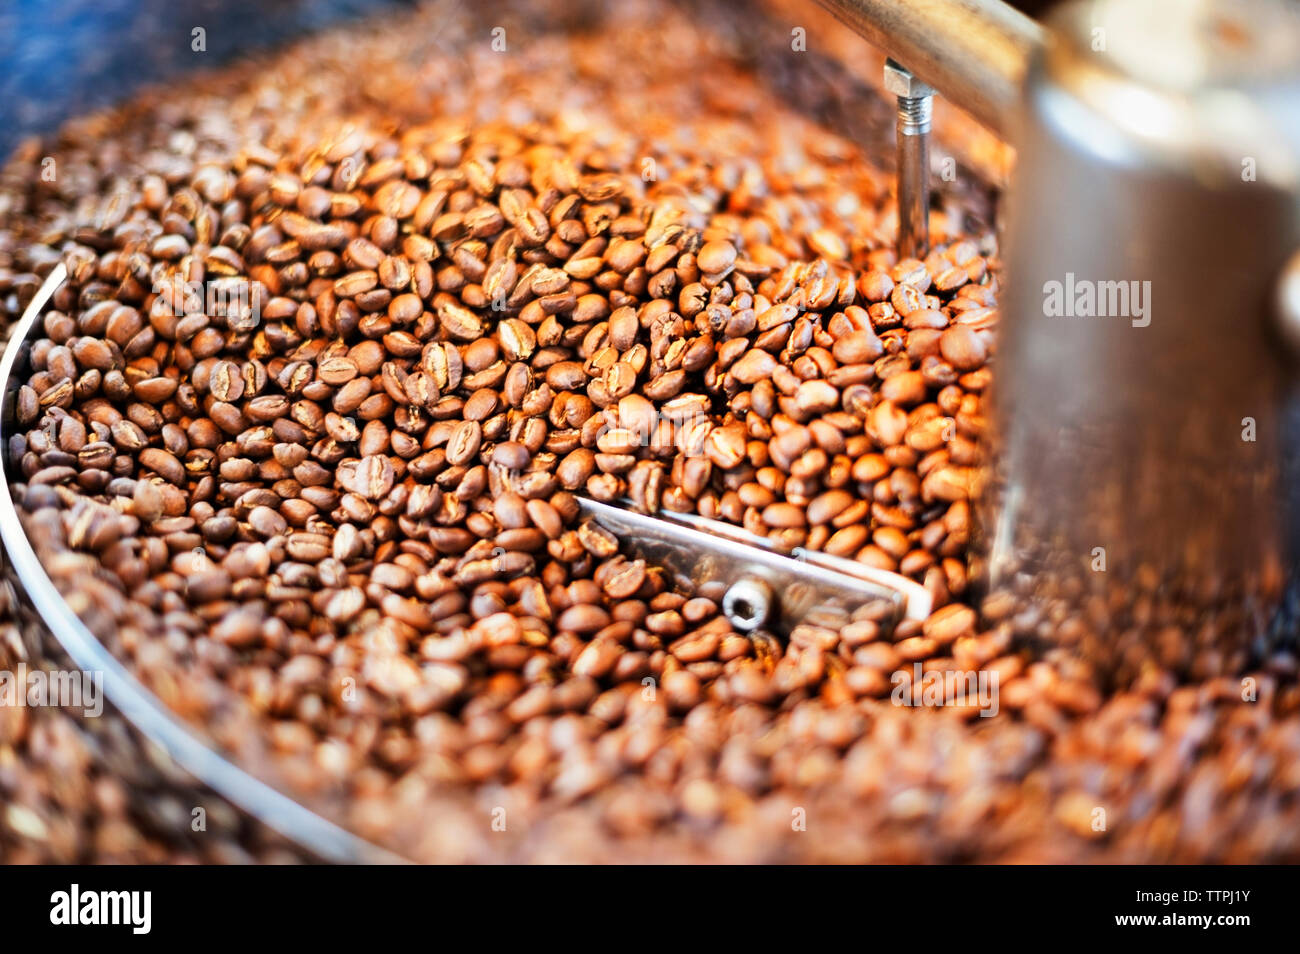 Close up of coffee beans in coffee roaster - Stock Image